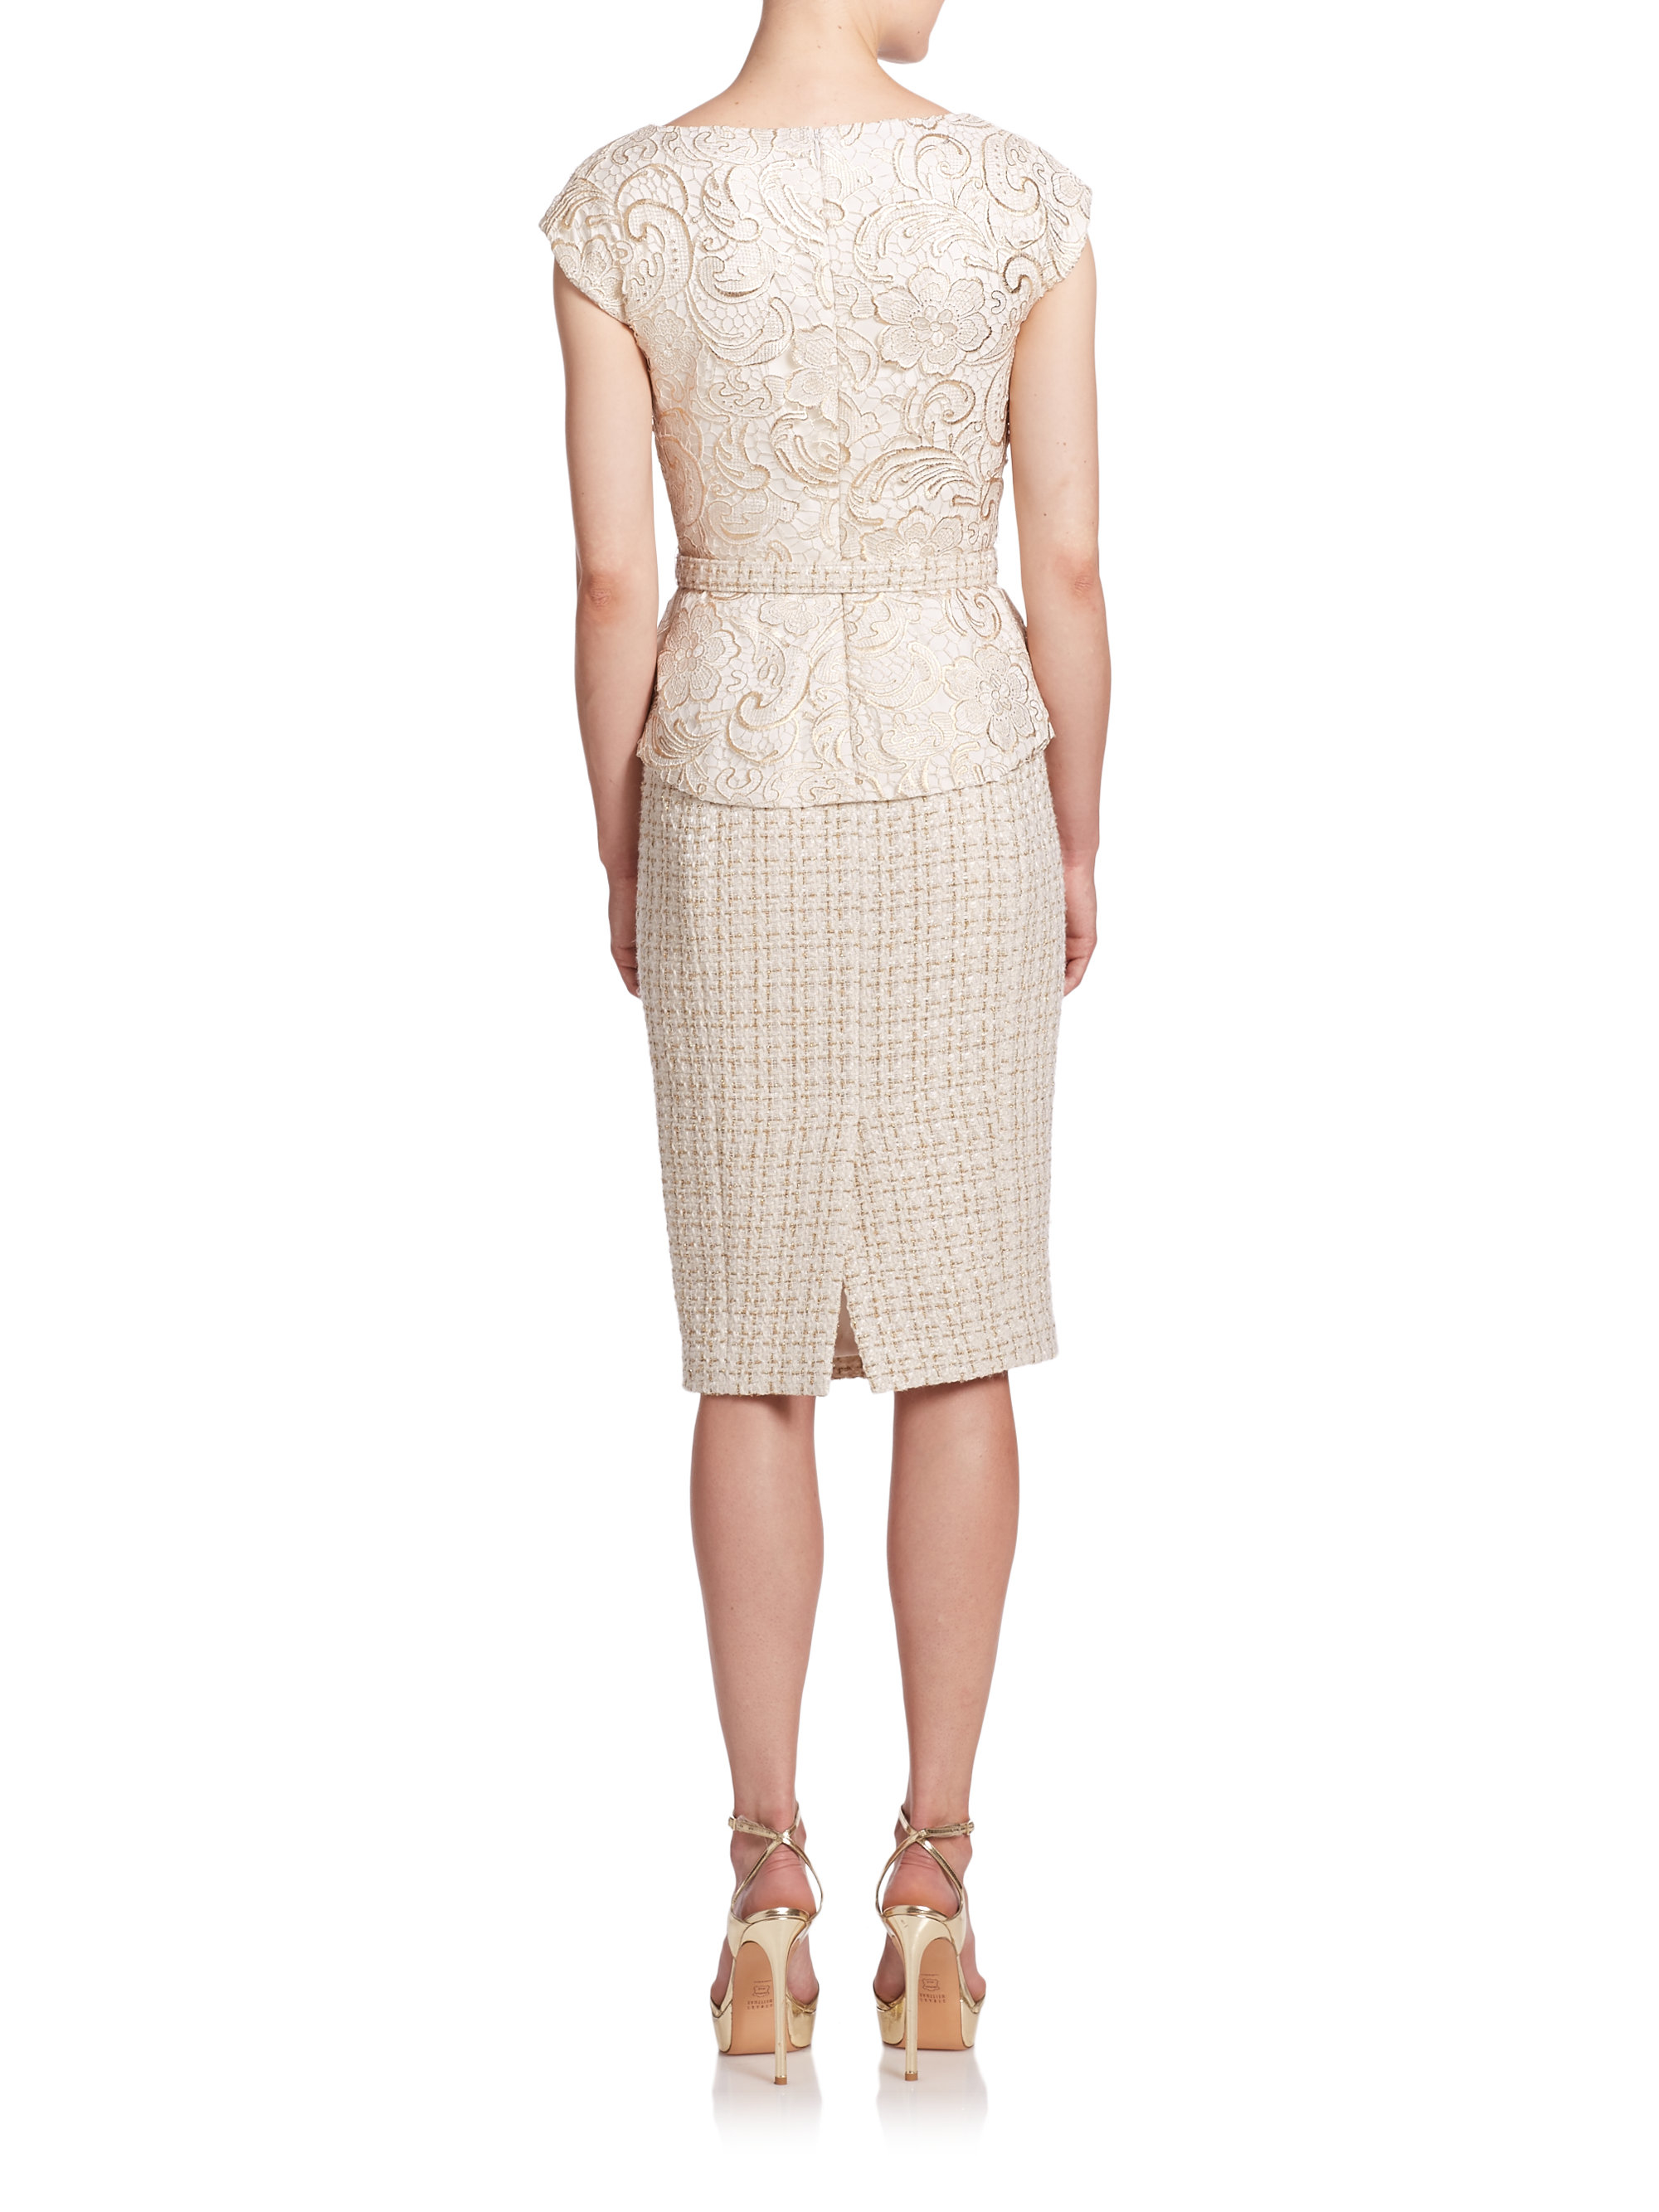 639f72285d19 Gallery. Previously sold at: Saks Fifth Avenue · Women's White Cocktail  Dresses